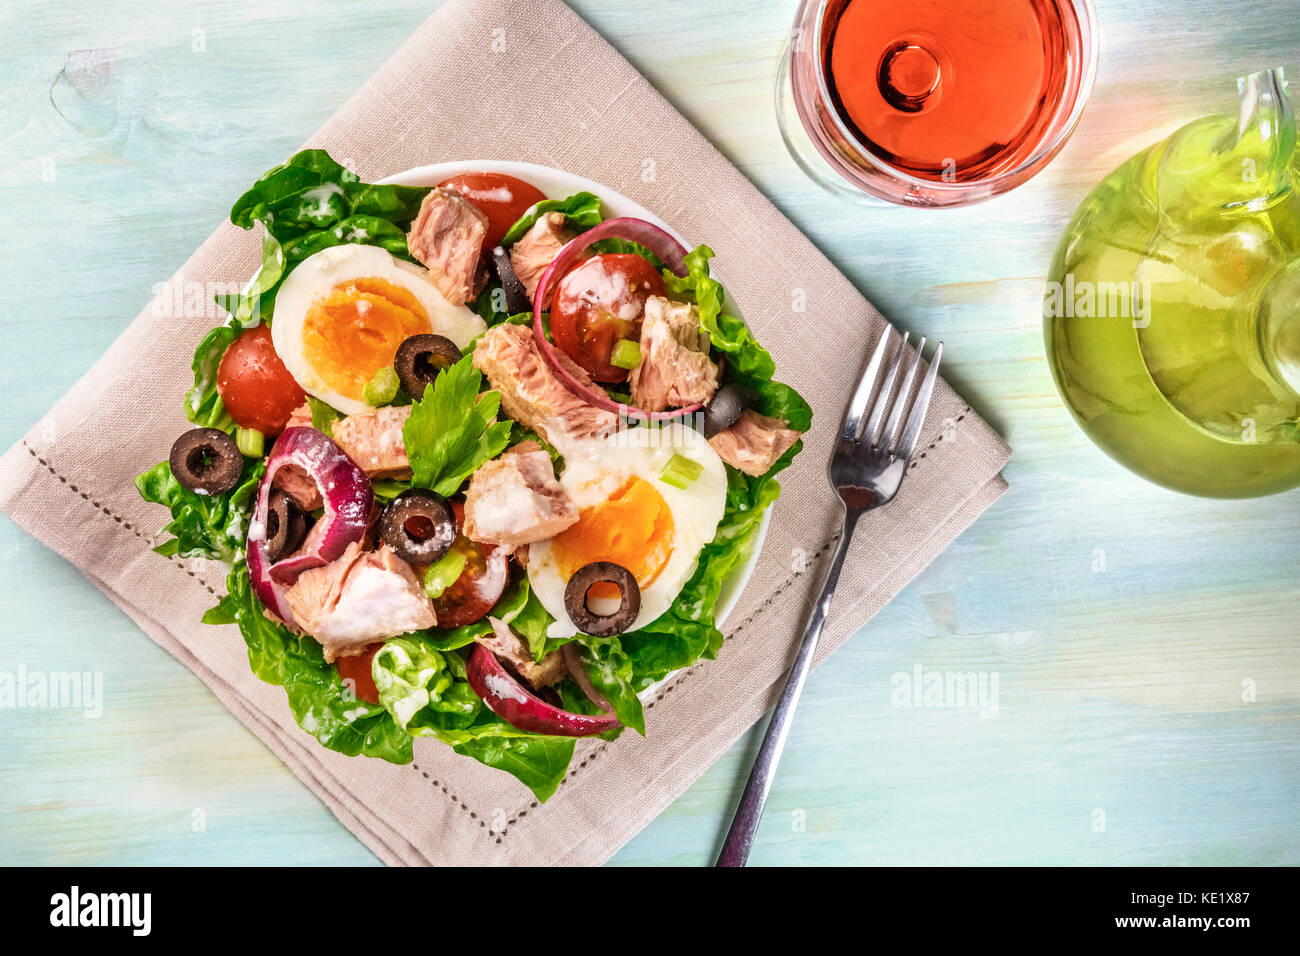 Tuna salad with wine, olive oil, and copy space - Stock Image